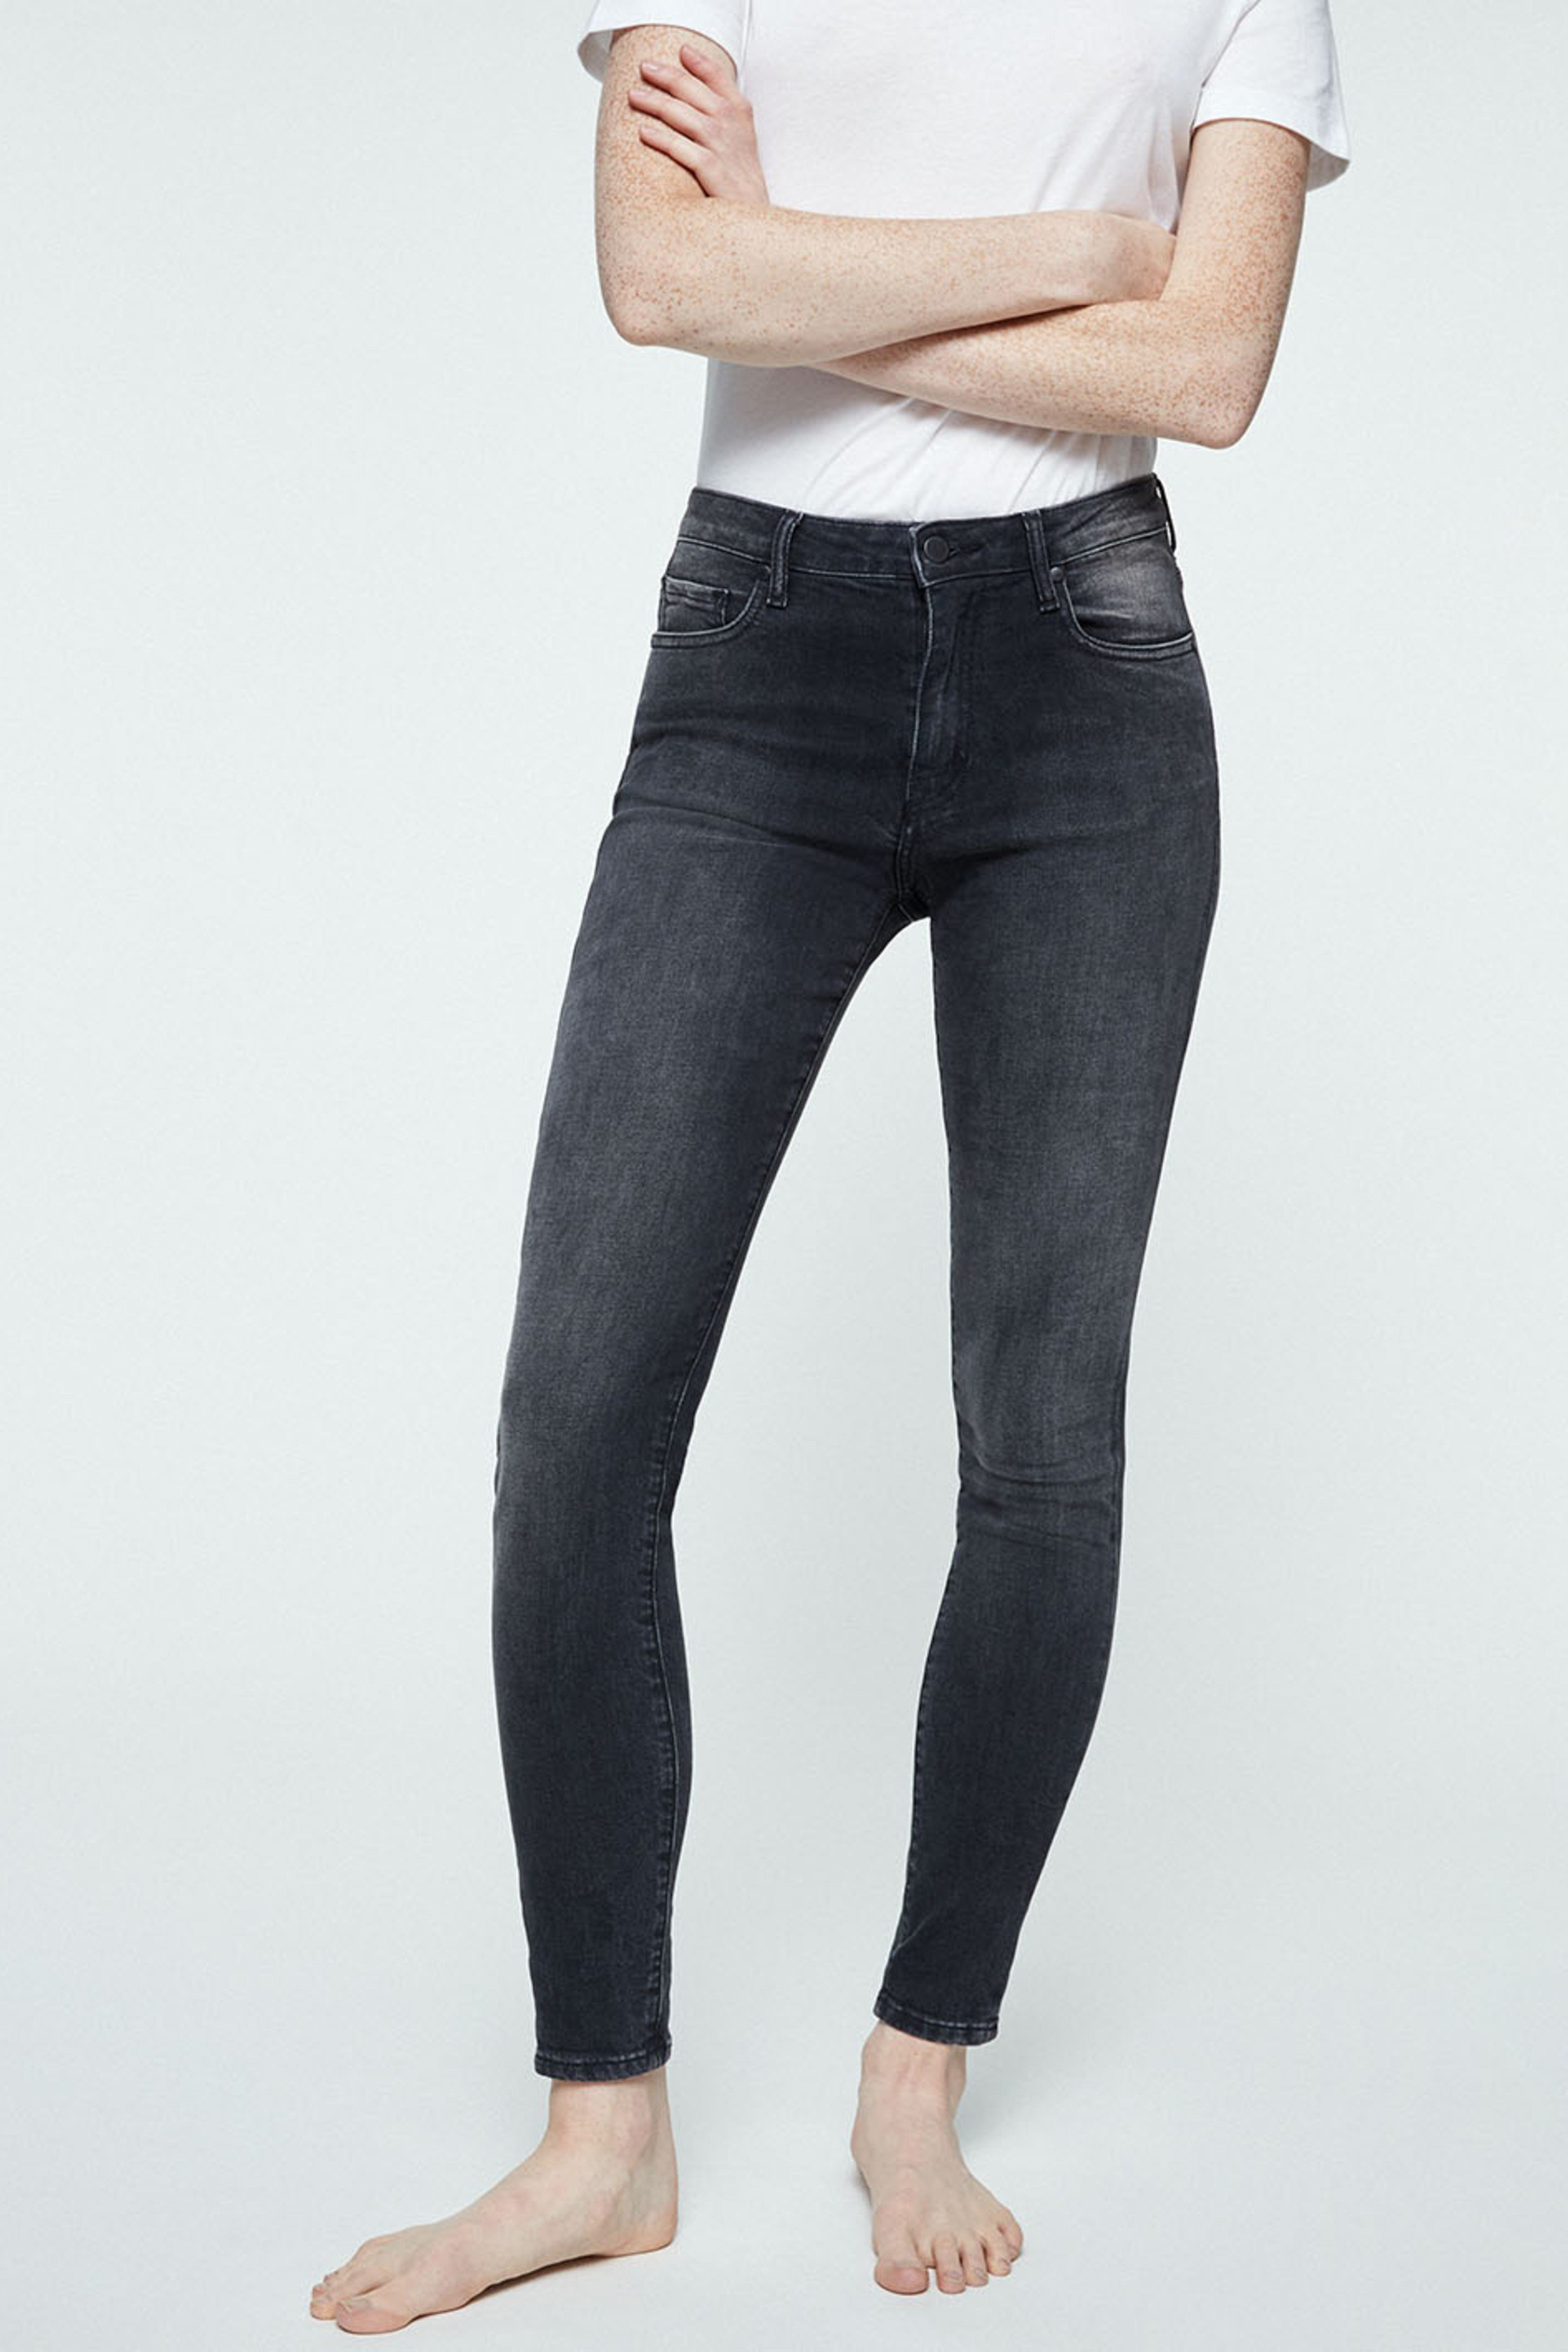 Jeans Tillaa Grey Wash from LOVECO